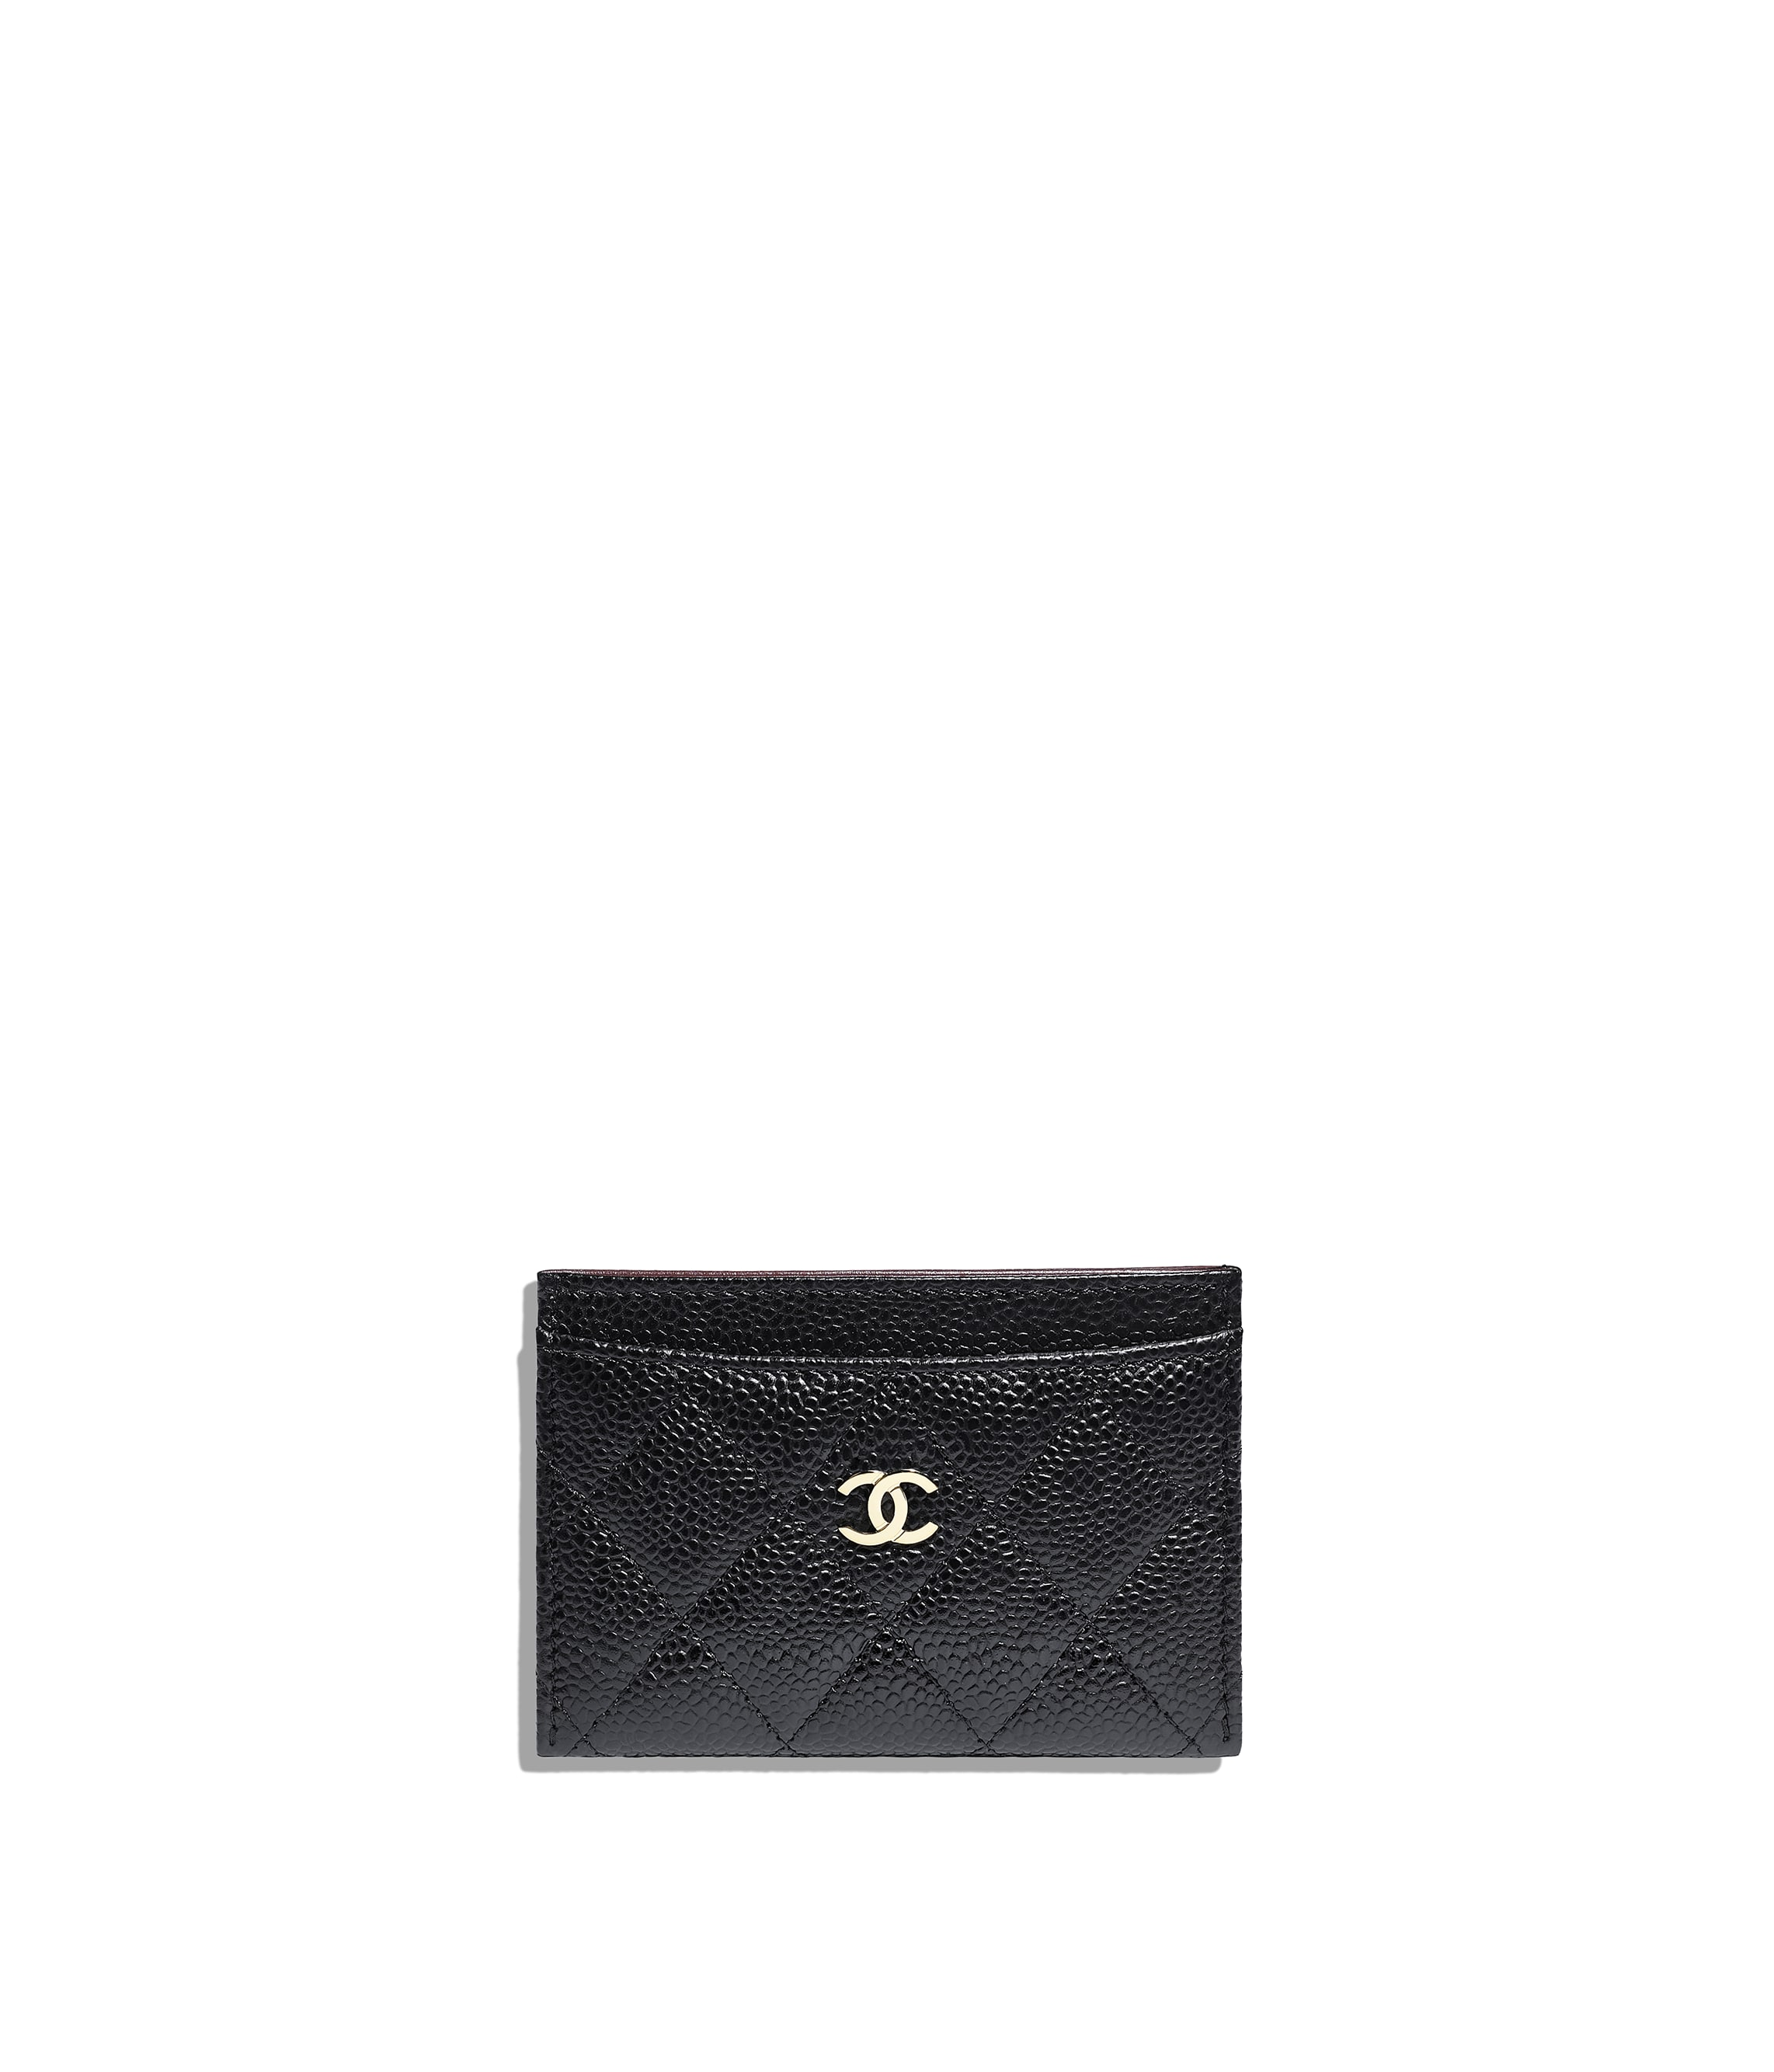 4cb7933880f9 Classic Card Holder, grained calfskin & gold-tone metal, black - CHANEL